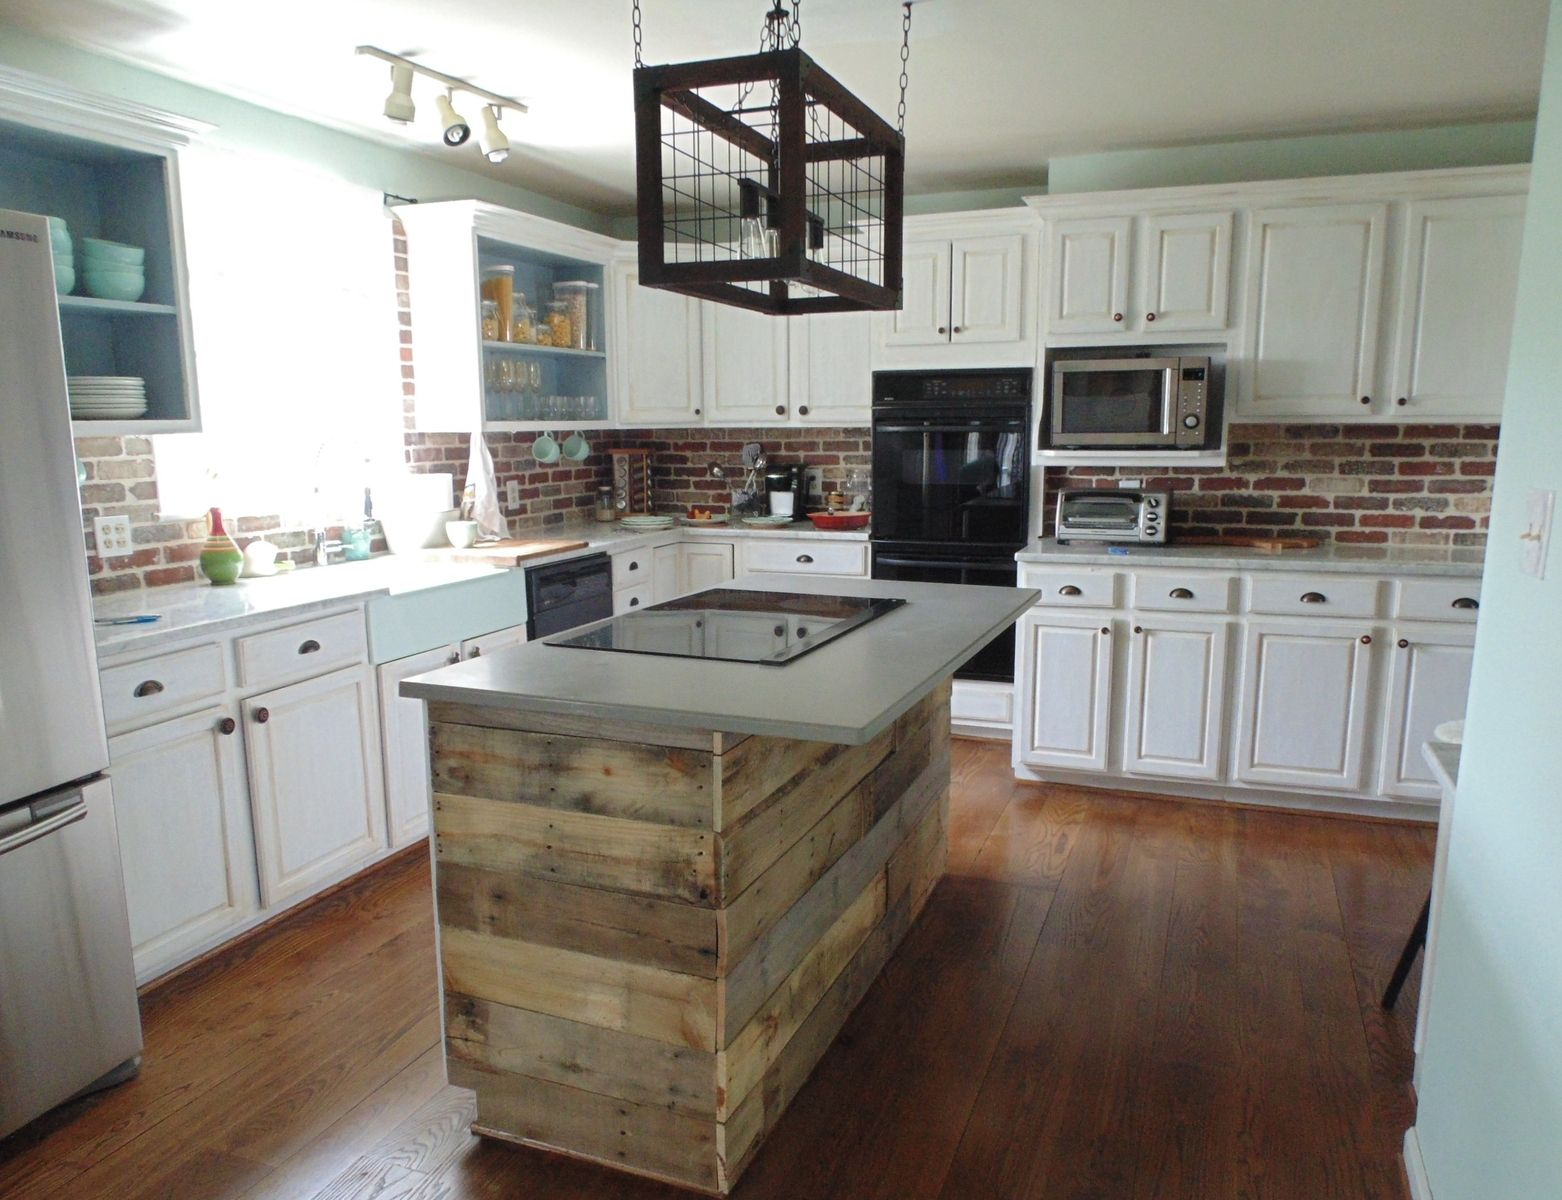 Custom Made Reclaimed Wood Interest Wall Or Island Covering - Custom Reclaimed Wood Interest Wall Or Island Covering By